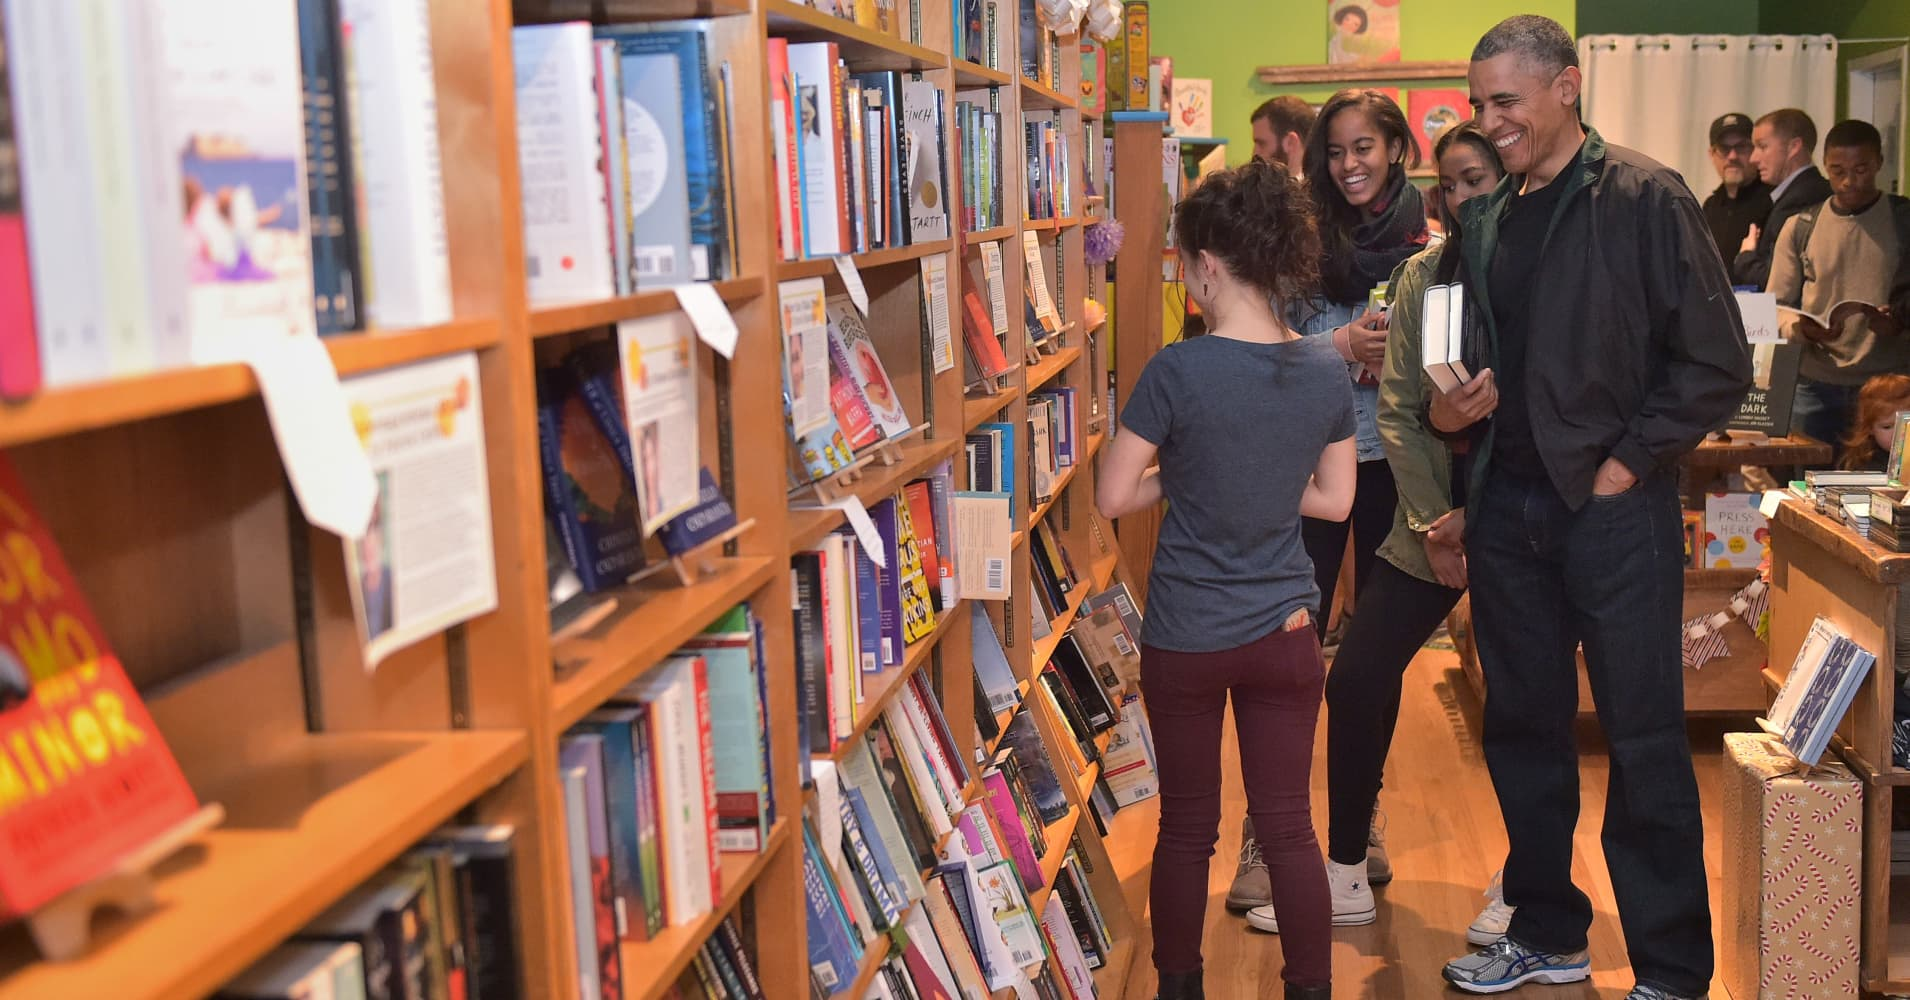 Last year, US President Barack Obama shopped at Upshur Street Books in Washington, DC, during Small Business Saturday with his daughters Malia and Sasha.